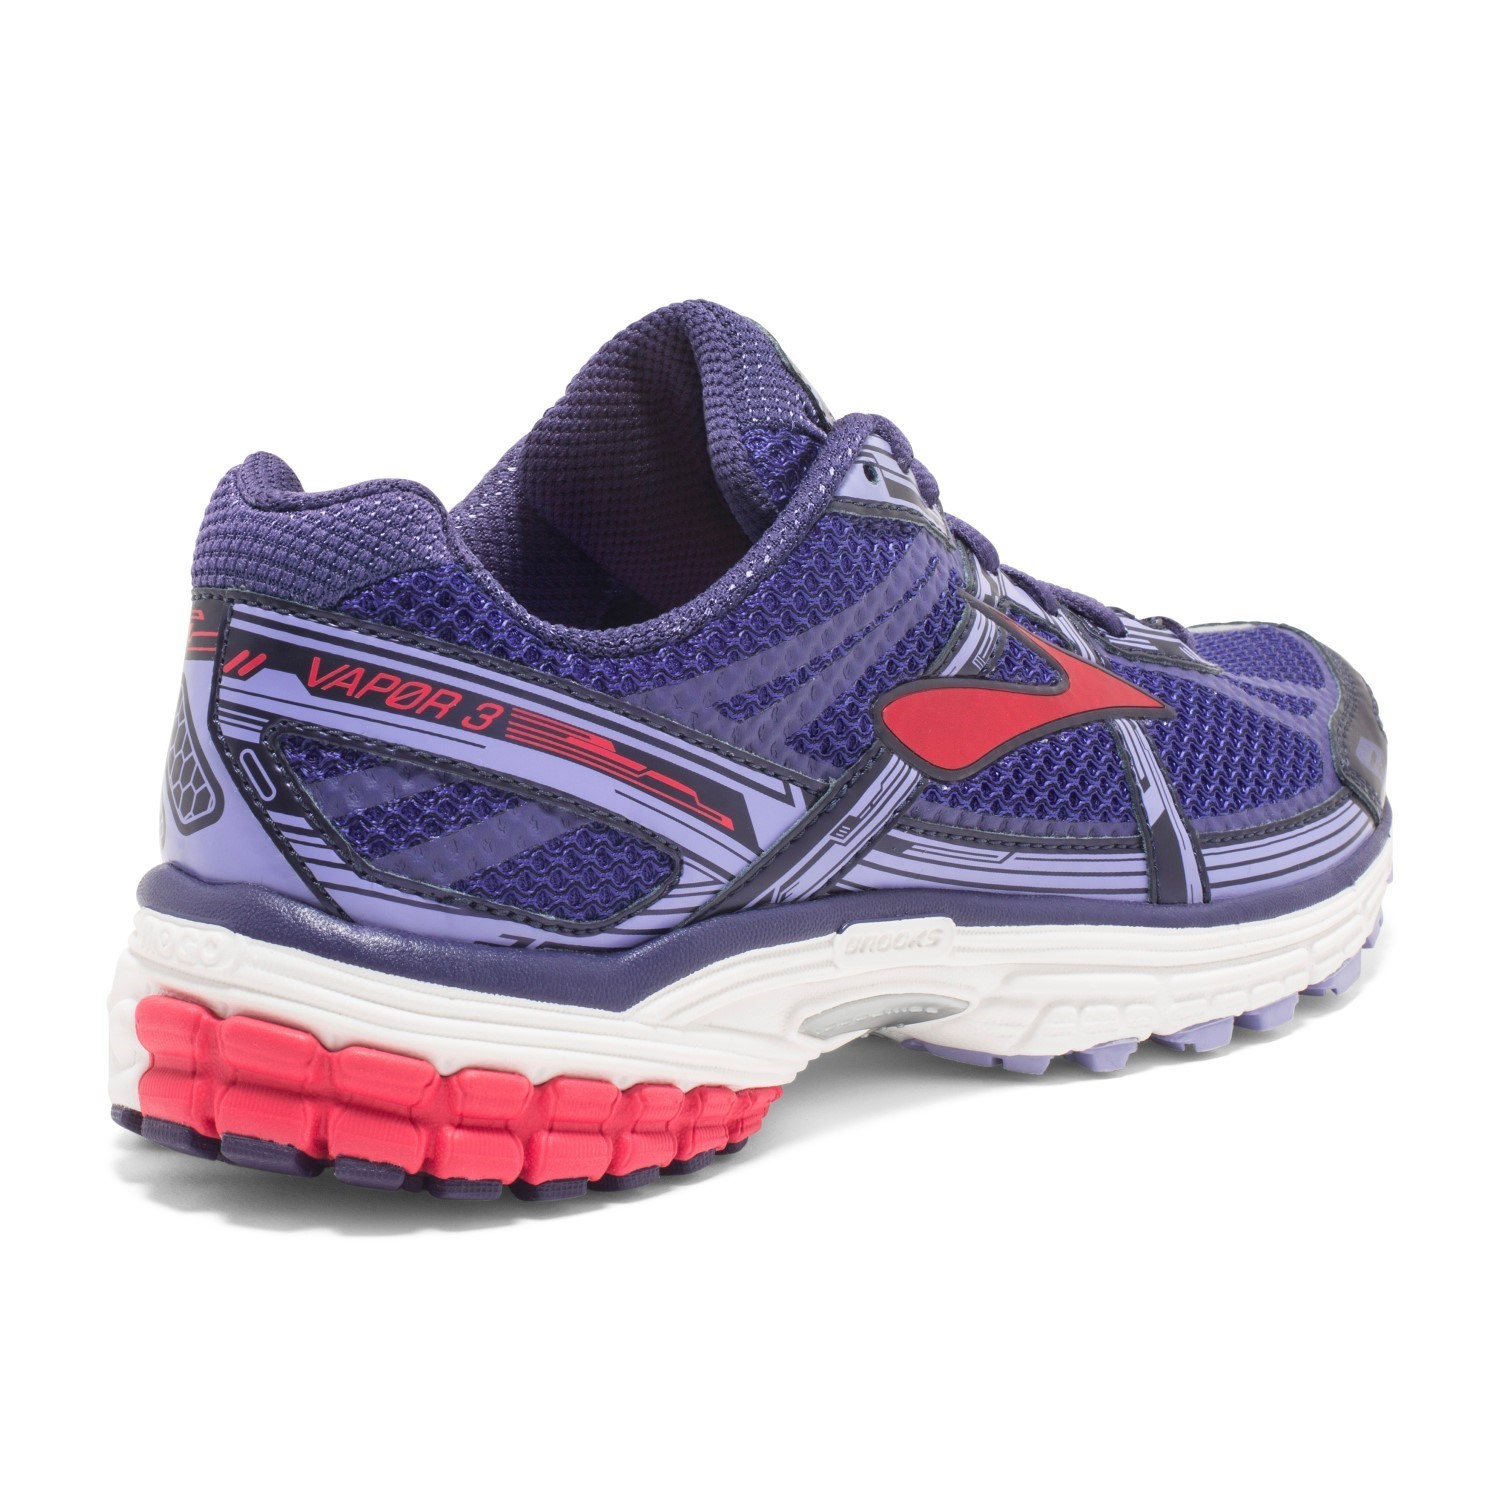 Brooks Vapor 3 - Womens Running Shoes - Clemantis Blue